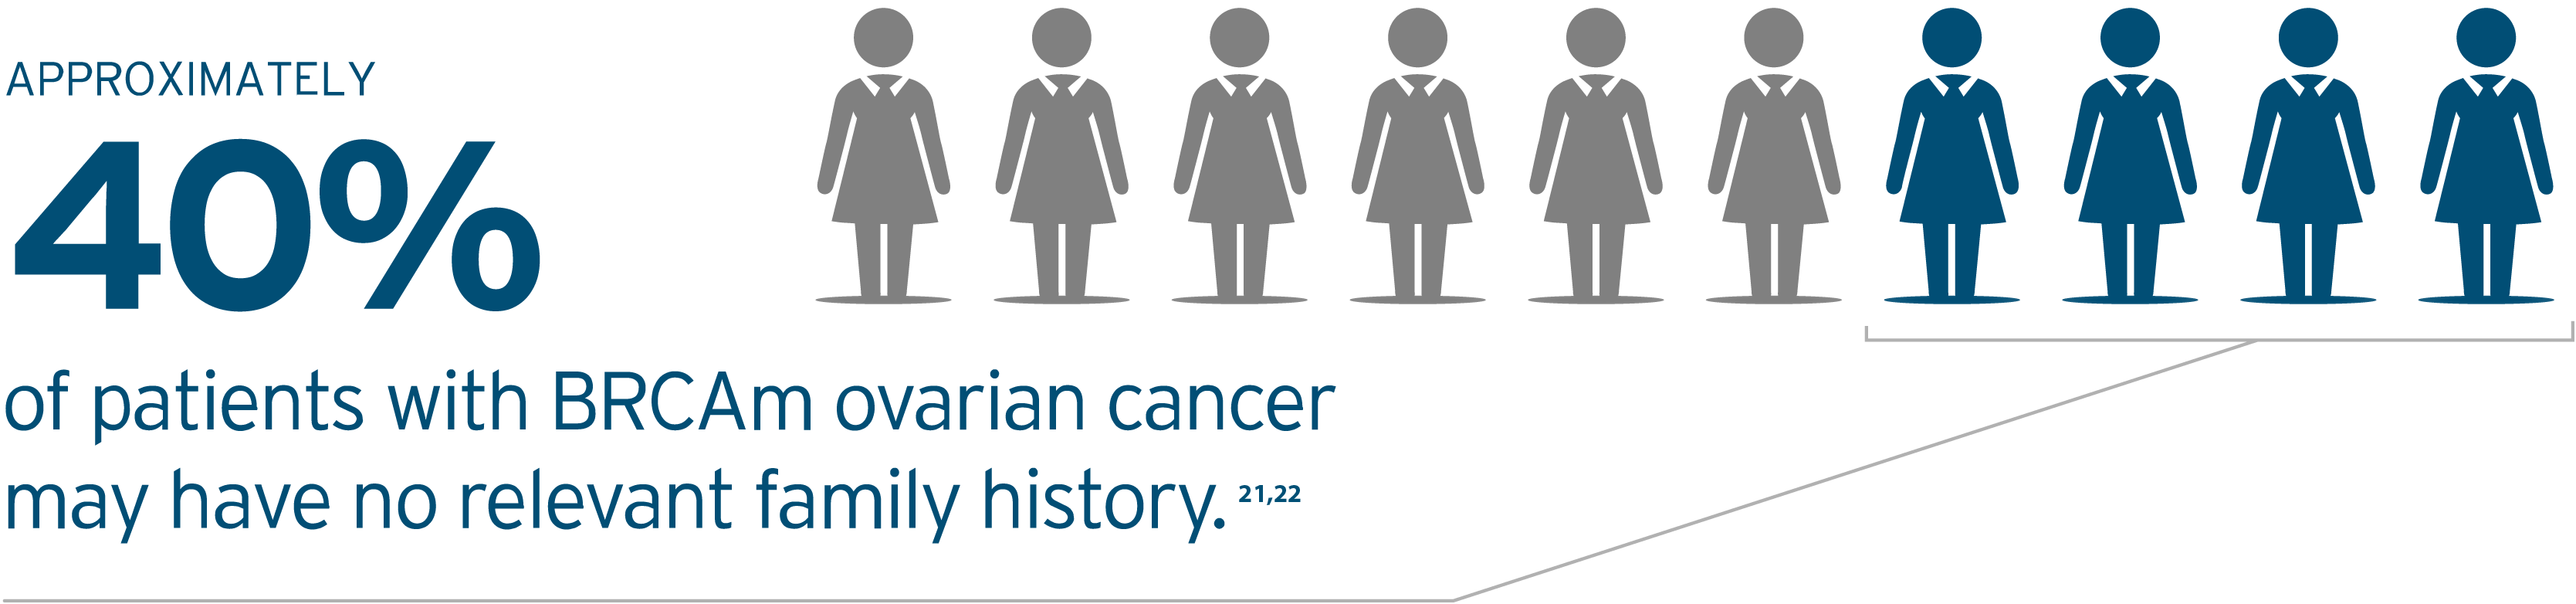 Approximately 40% of patients with BRCAm ovarian cancer may have no relevant family history